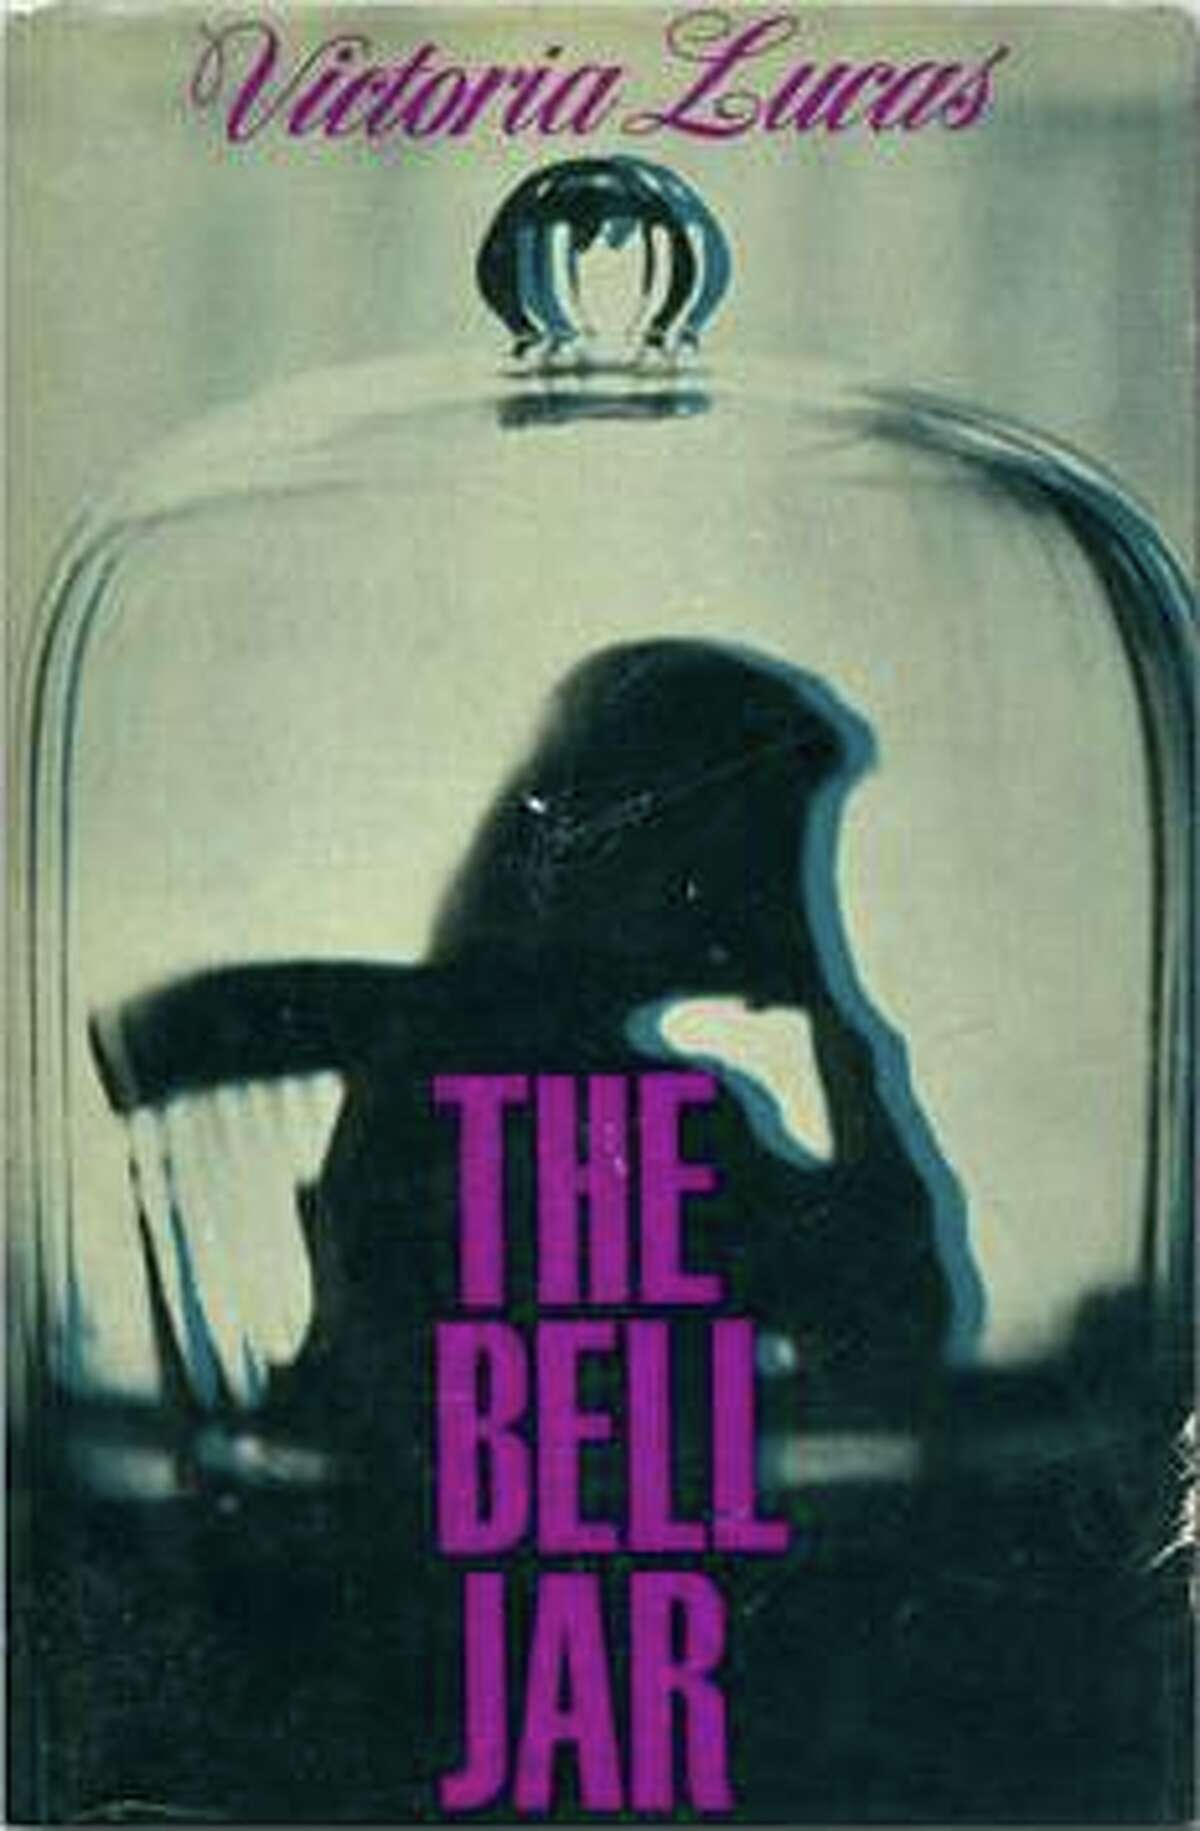 """""""The Bell Jar,"""" Plath's largely autobiographical novel, describes the mental breakdown of Esther Greenwood, a promising young writer who tries to commit suicide. Plath first published the novel under a pseudonym, Victoria Lucas."""